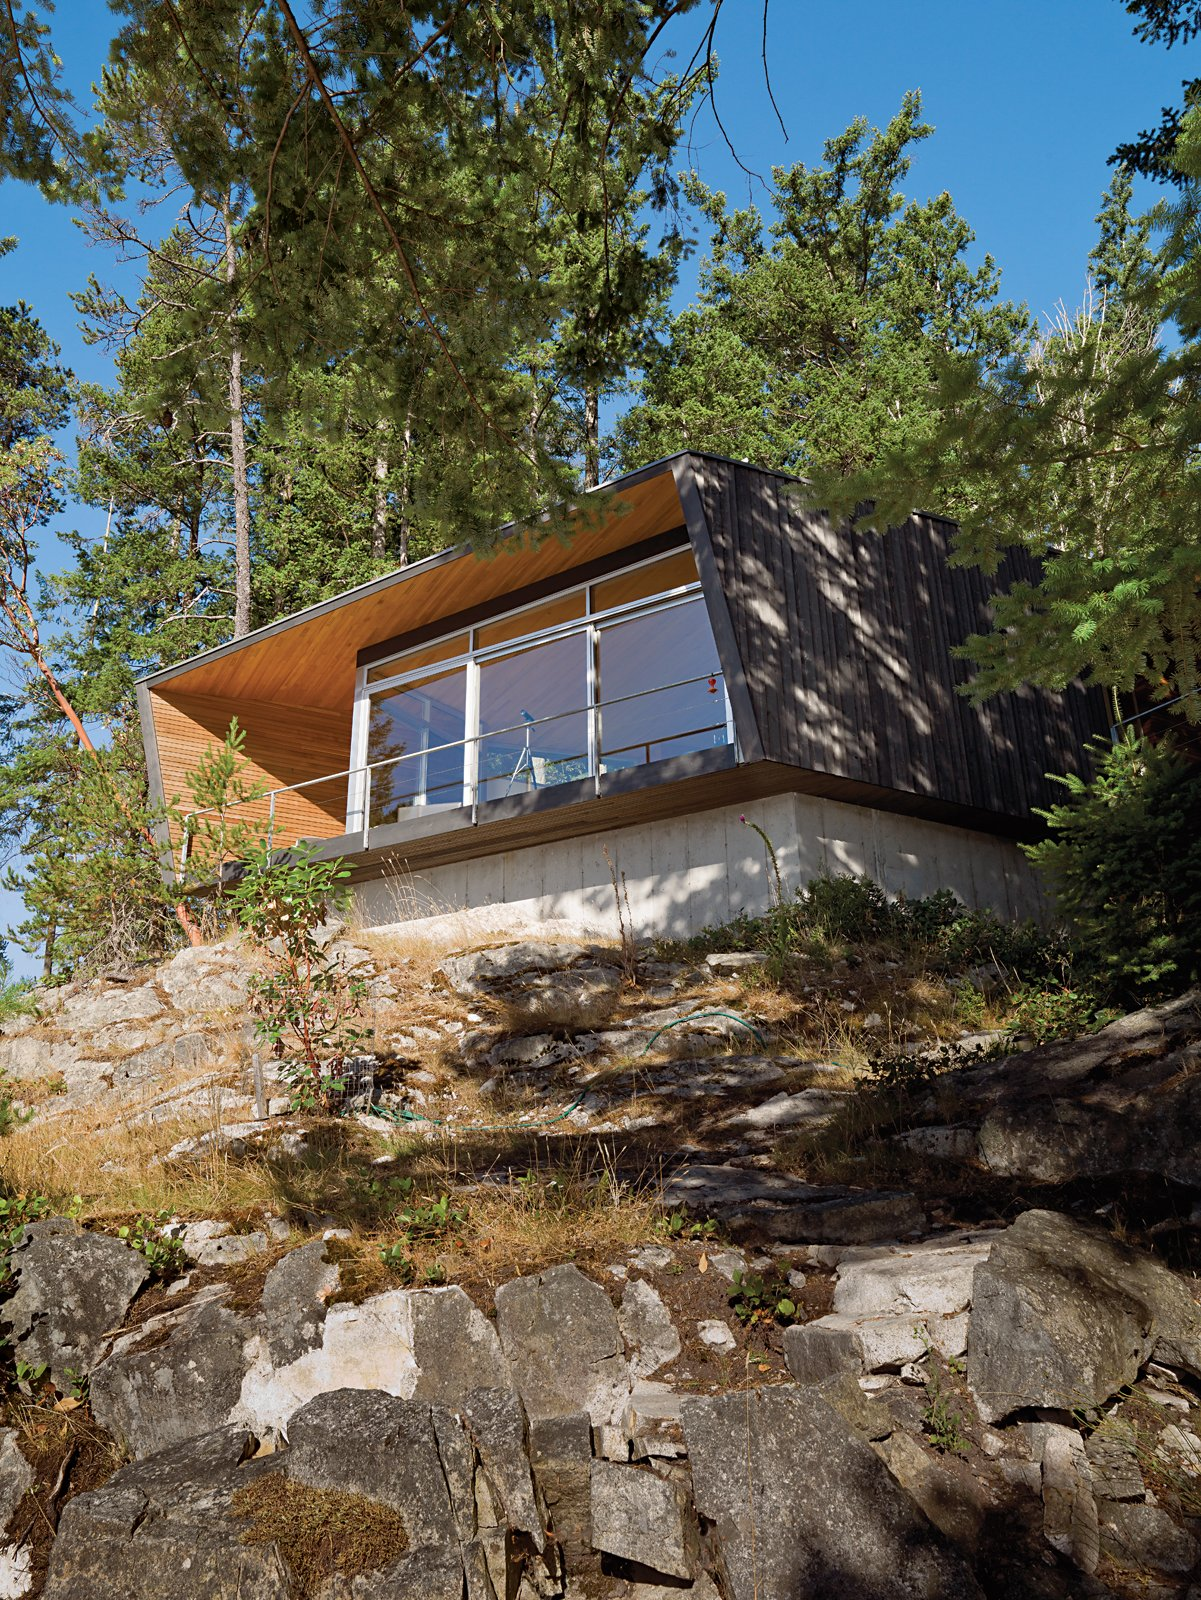 Perched over a cliff face, the hooded deck of the Gambier Residence reads like a ship's prow over Howe Sound, the scenic waters near Vancouver.